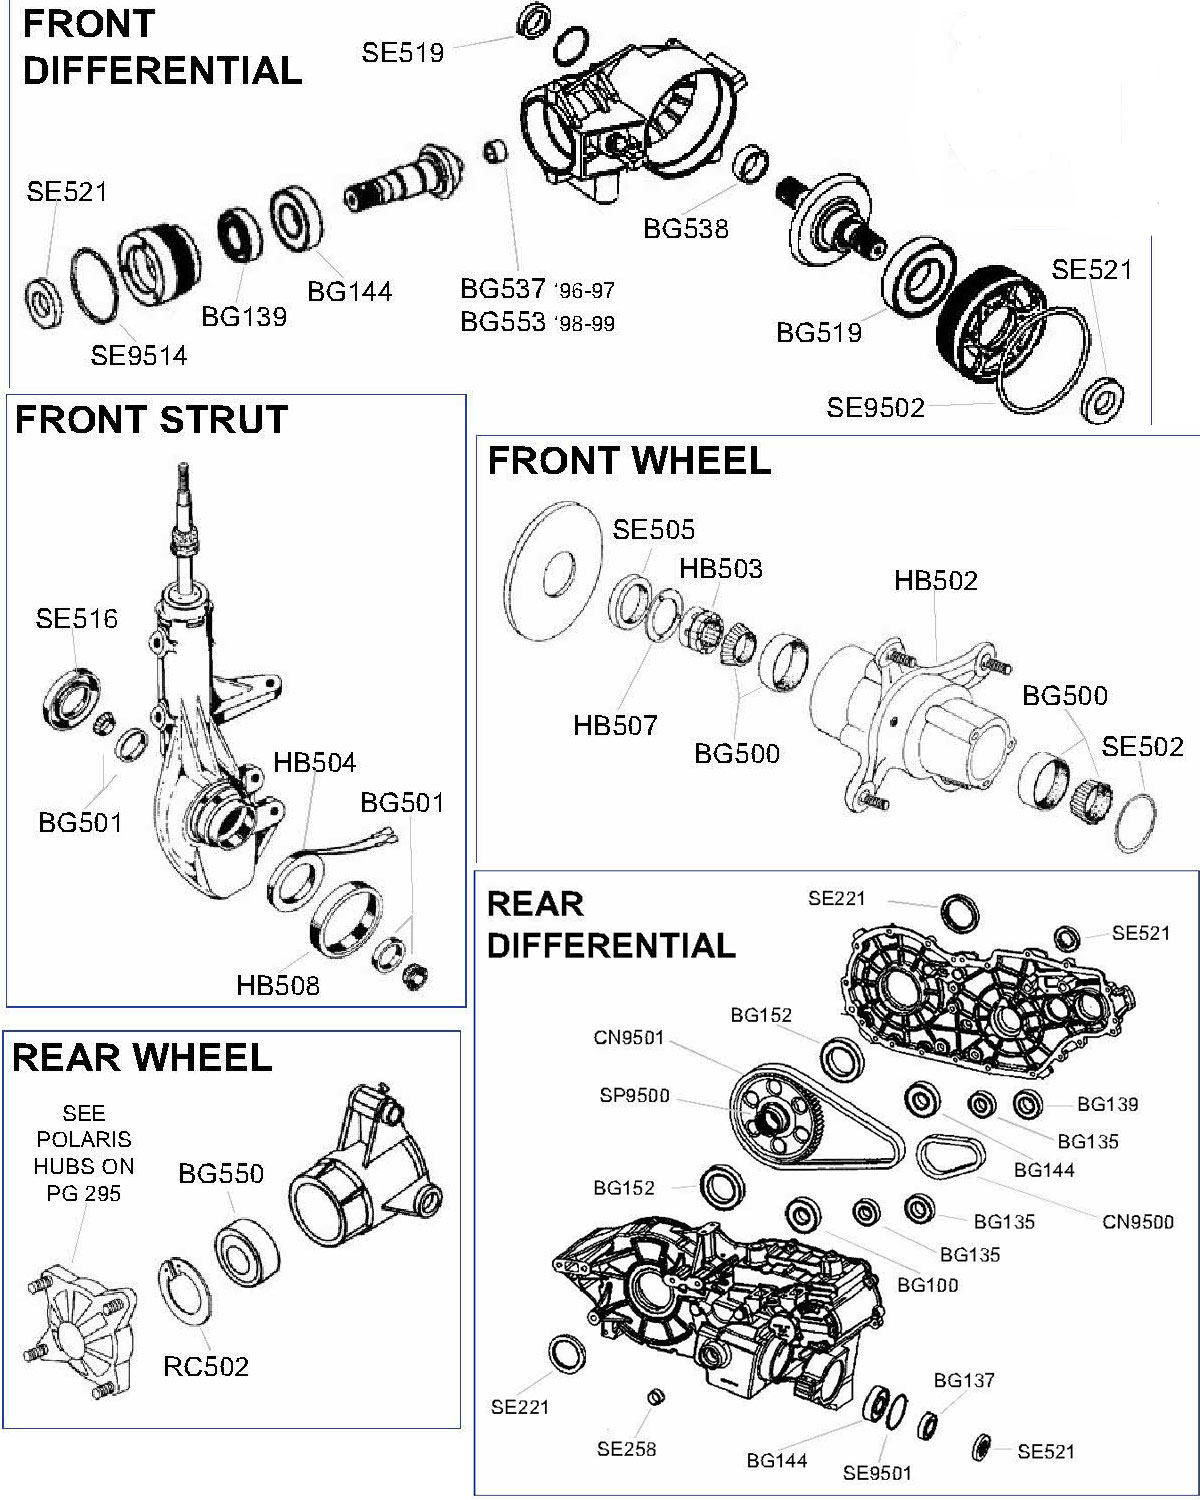 PolarisP7 polaris sportsman parts diagram polaris sportsman 400 wiring diagram at crackthecode.co